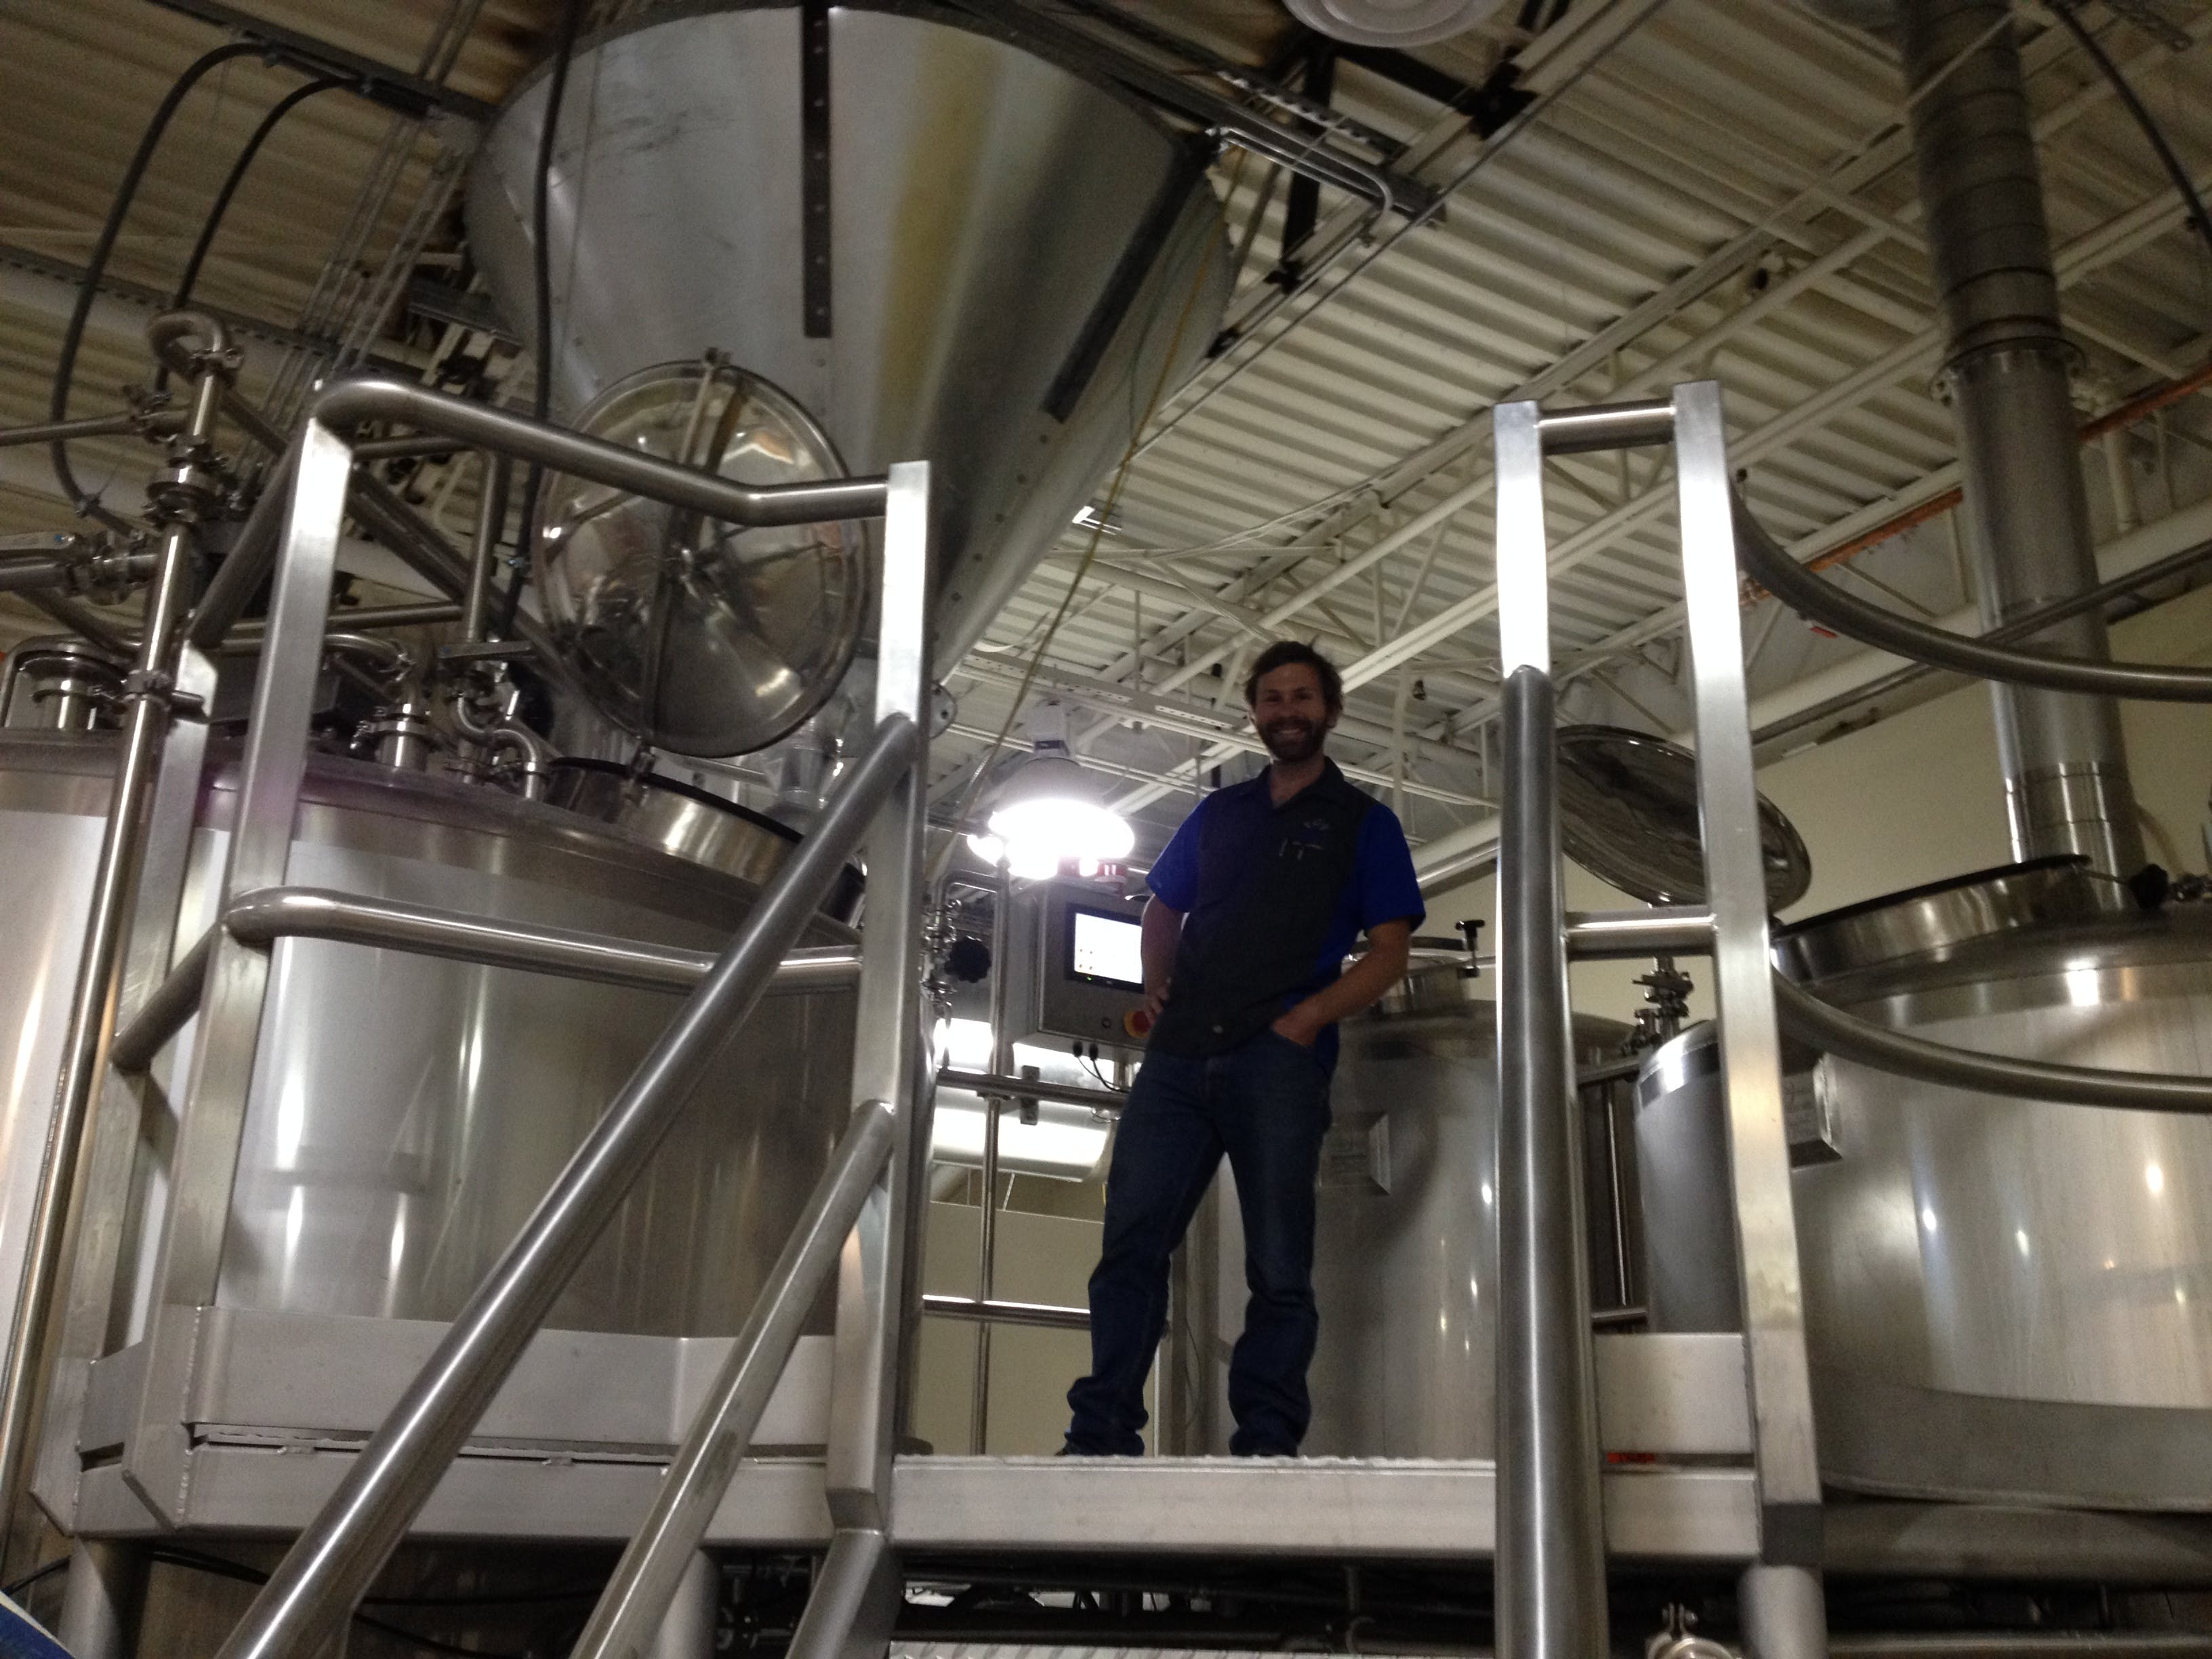 20 BBL Brewhouse Brewhouse sold by W. M. Sprinkman